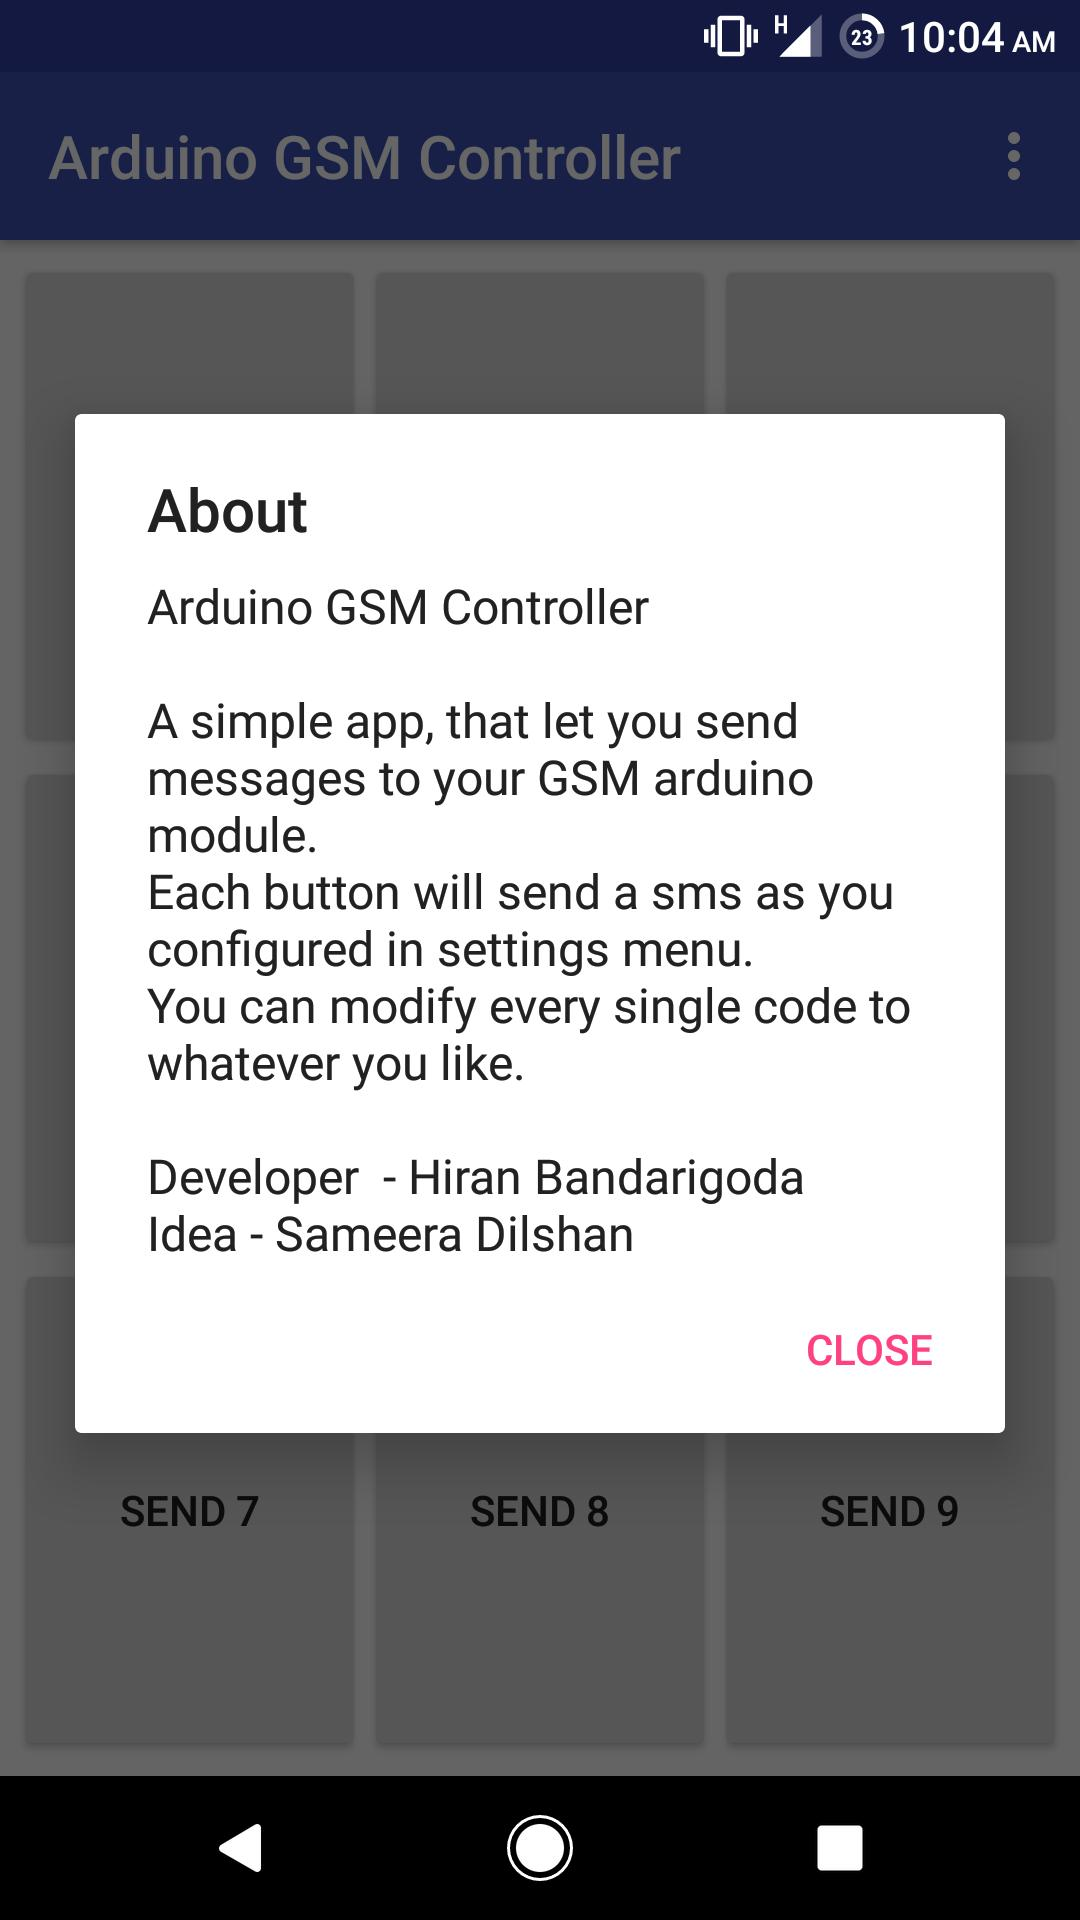 Arduino GSM Controller for Android - APK Download